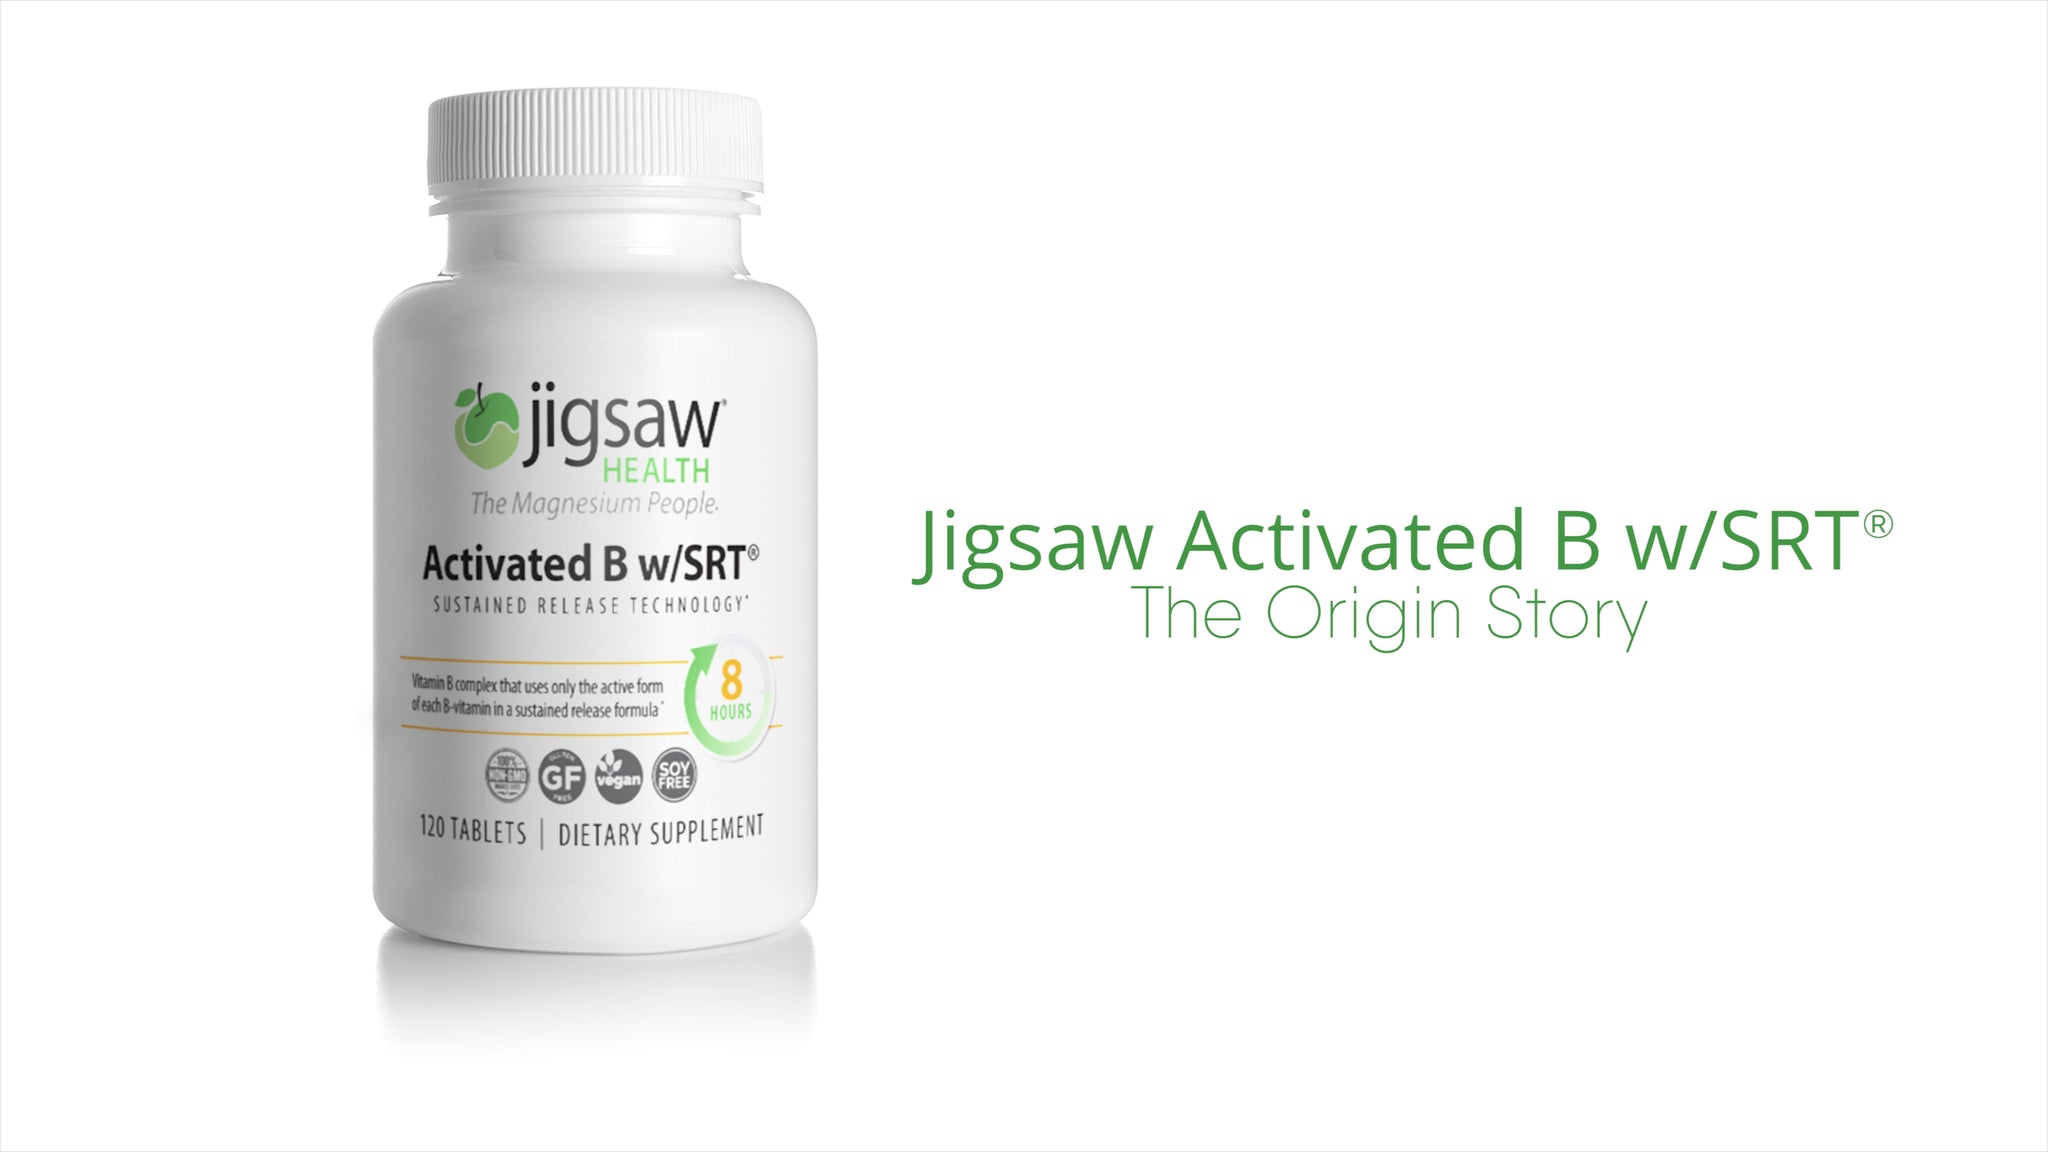 Jigsaw Activated B w/SRT®: The Origin Story